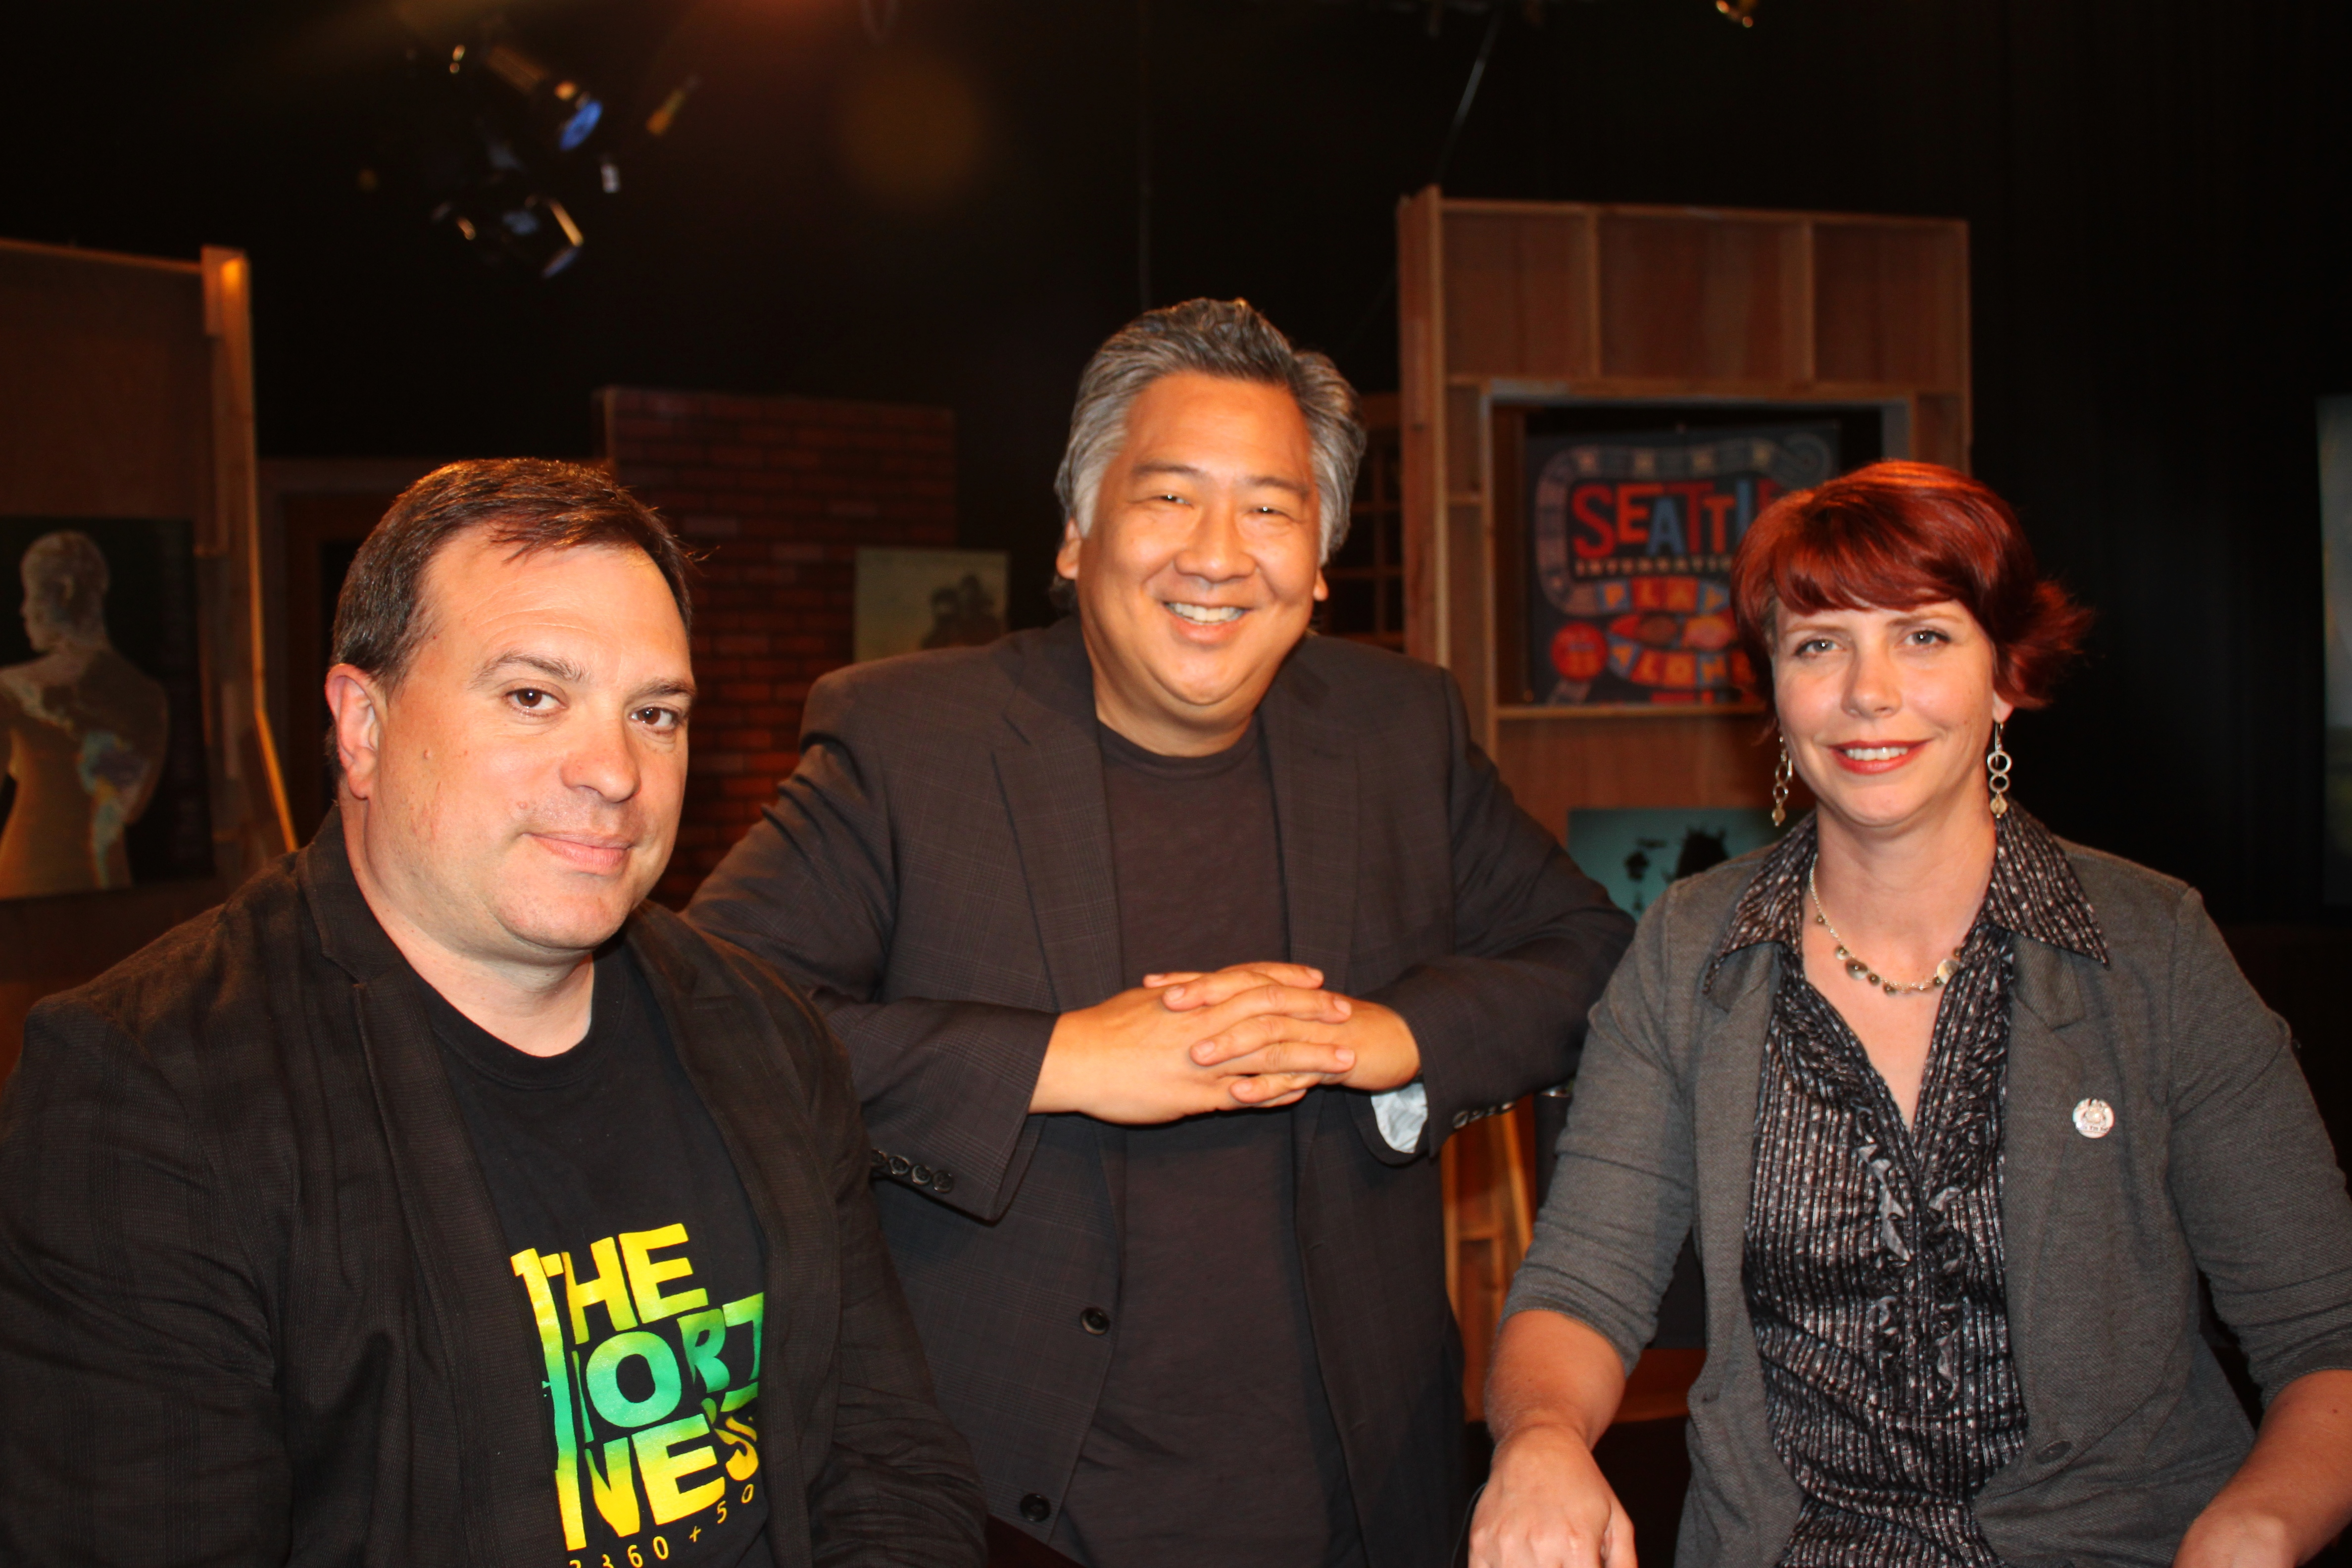 Scott (L) and Angelica (R) Macklin on set with host Andrew Tsao. Photo by Ashley-Rose O'Mara